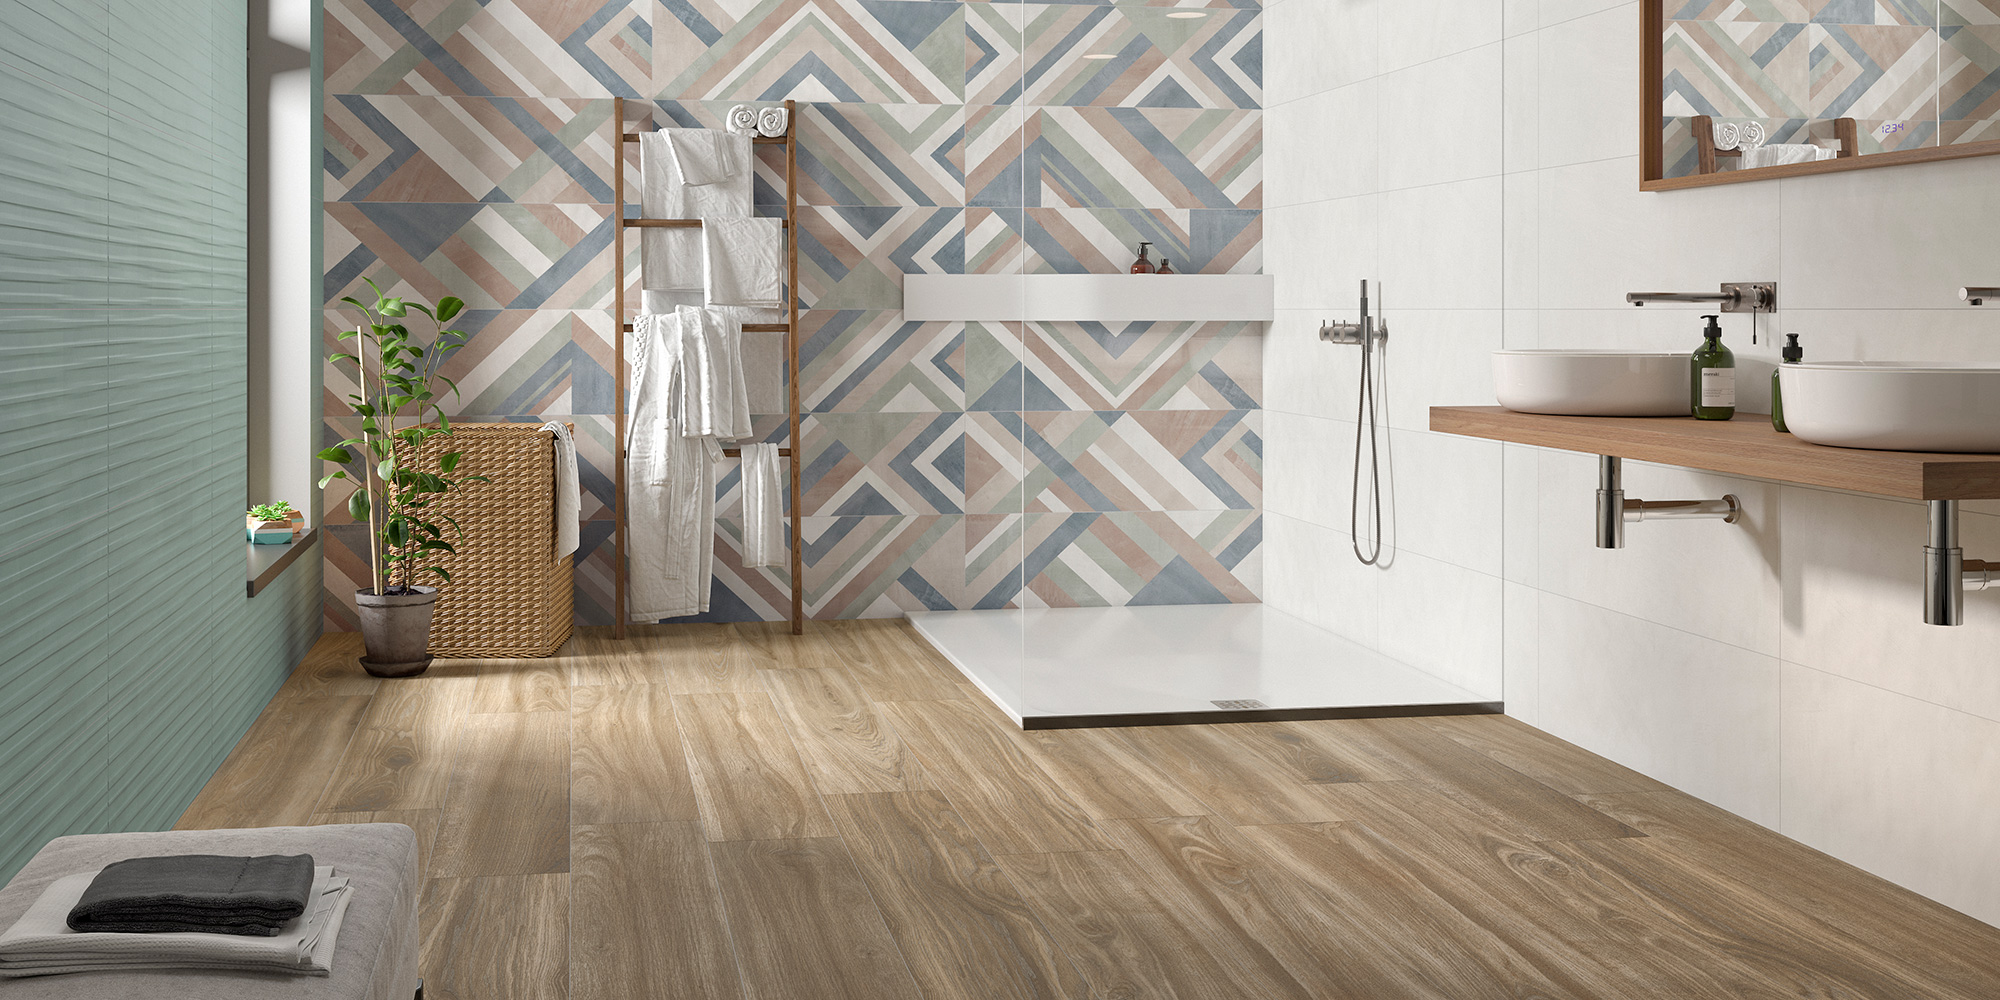 Impulse Volia Monet Forma. Mono-colour wall and floor tiles with patterned decors.